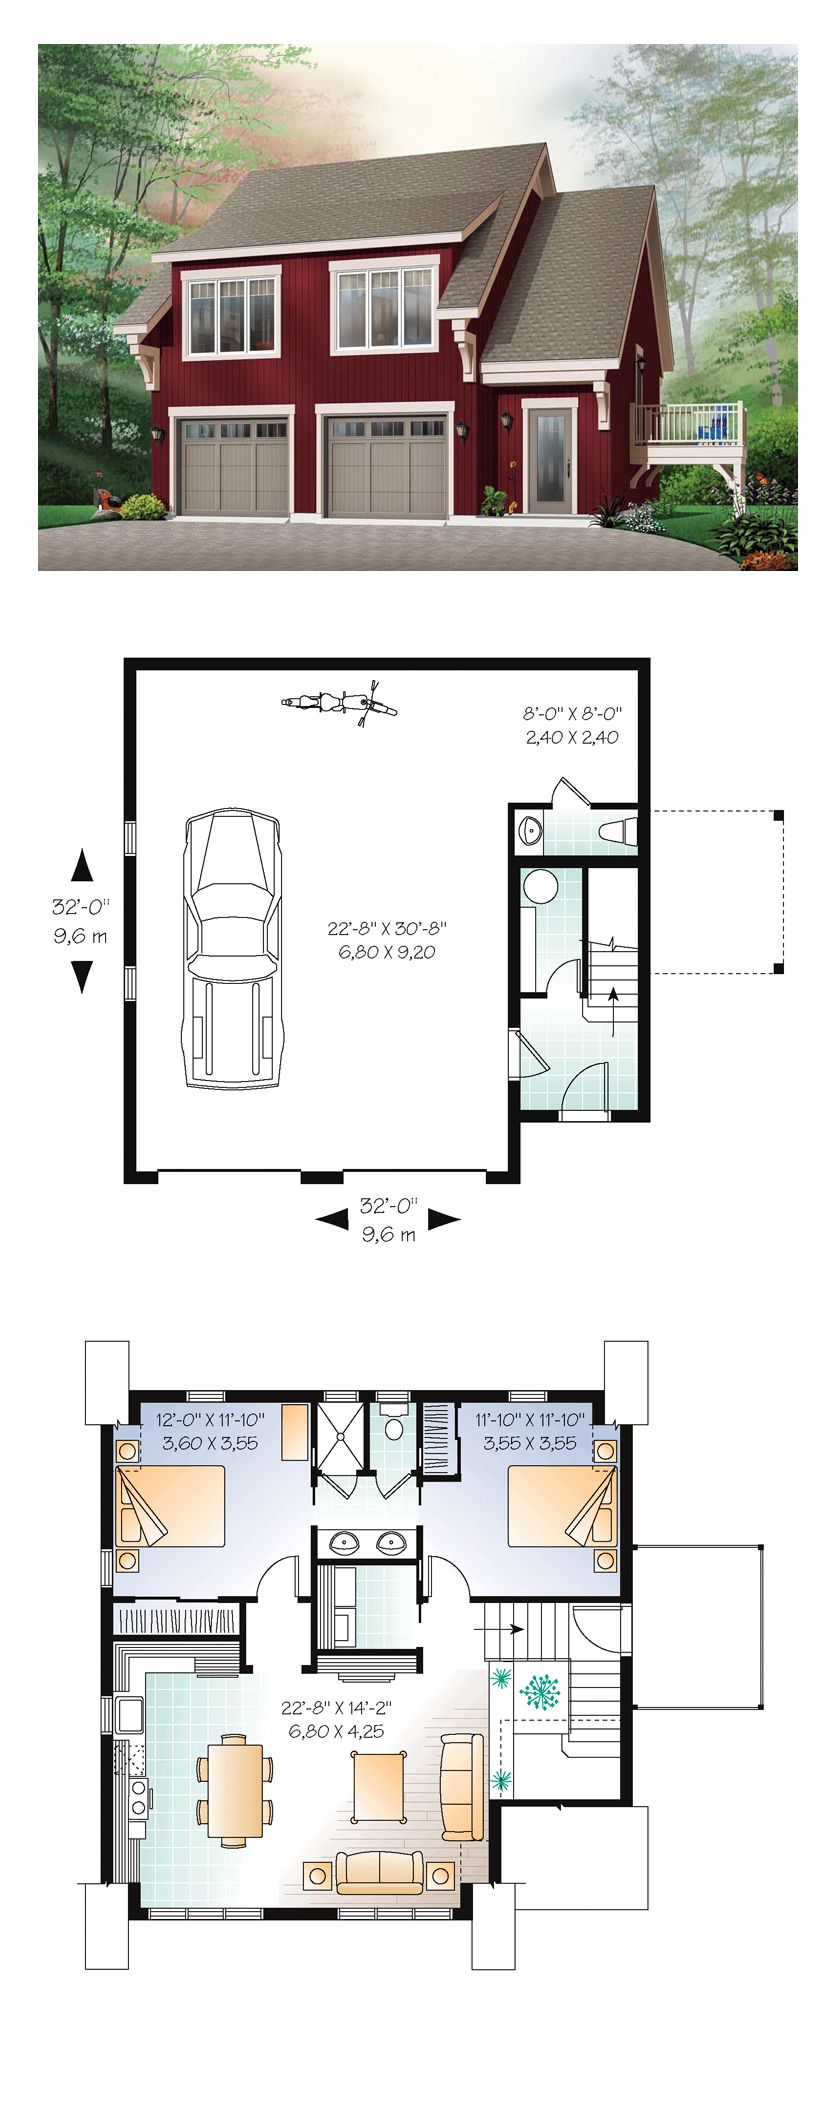 Garage Apartment Plan 64817 Total Living Area 1068 sq